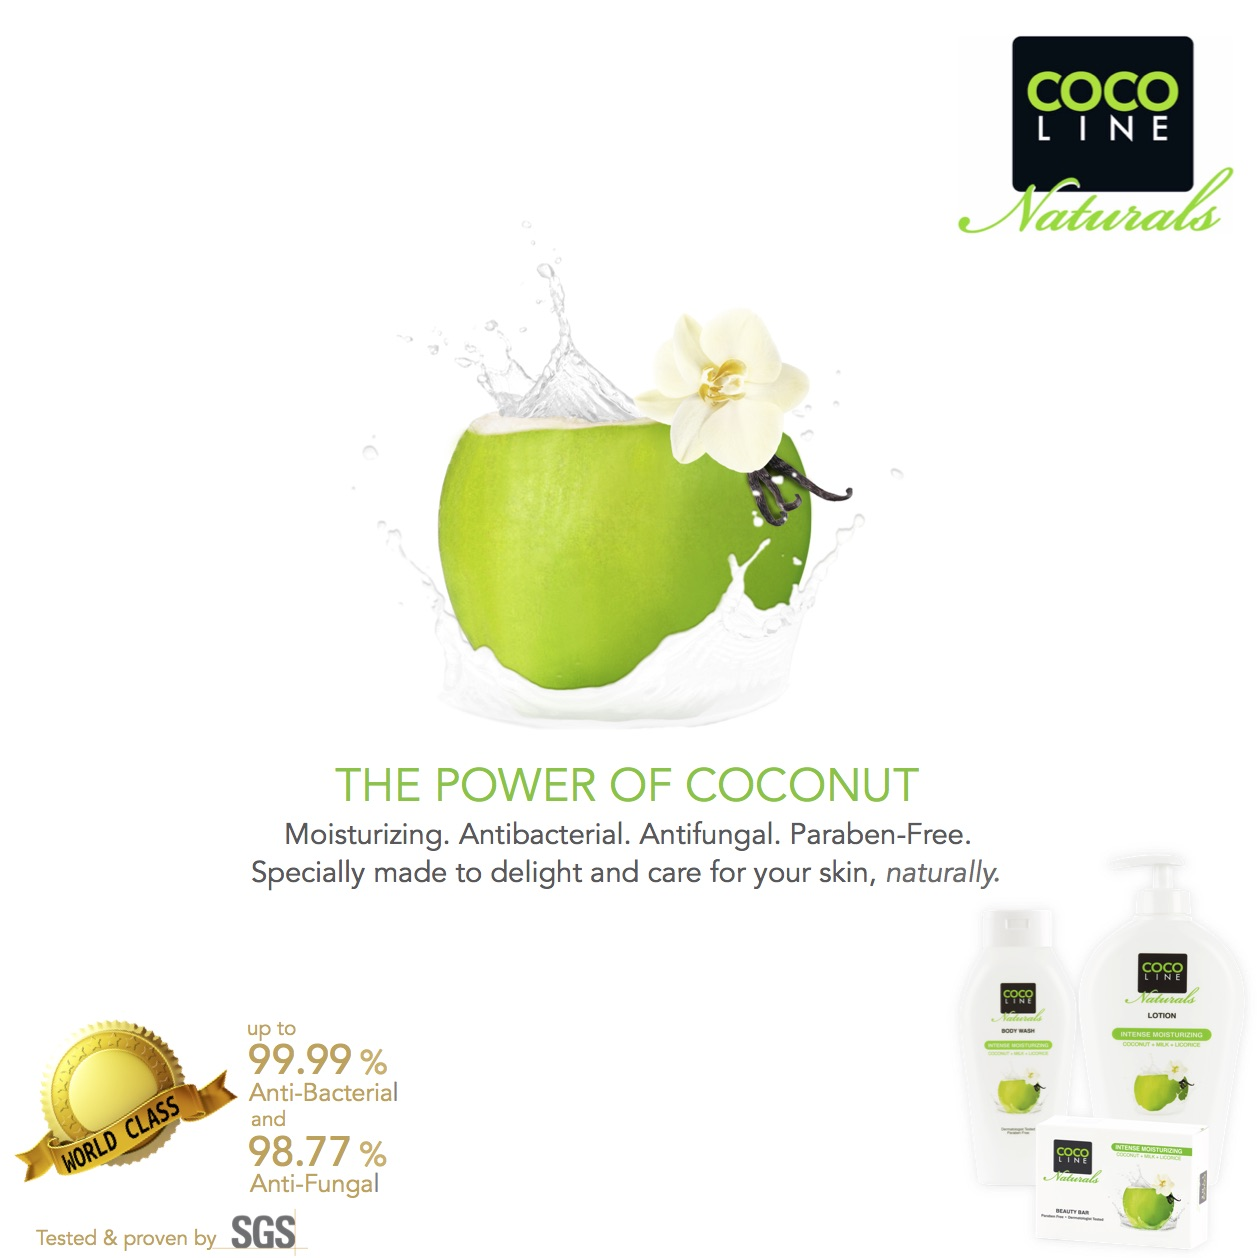 Where To Buy Cocoline Naturals Products